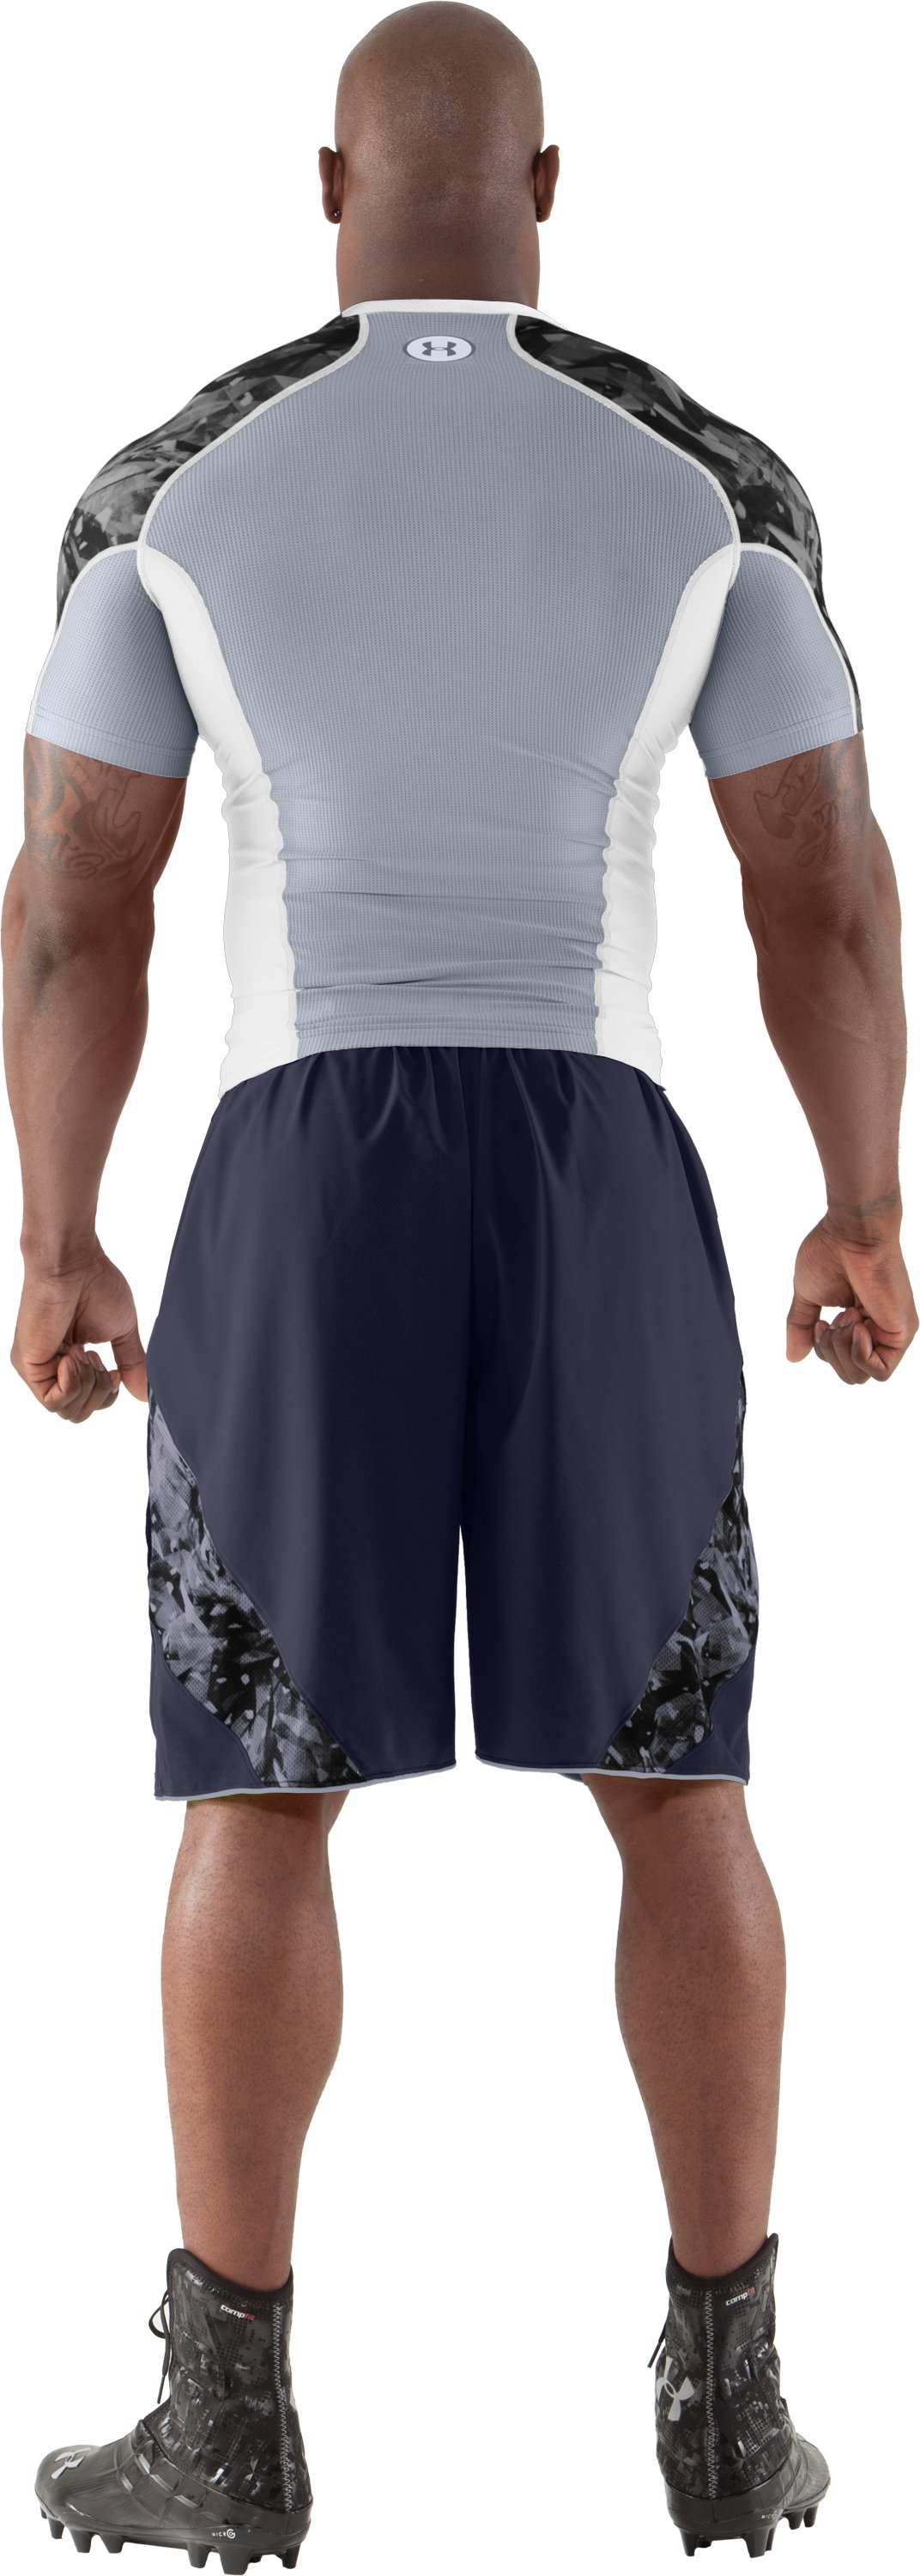 Men's NFL Combine Authentic Shorts, Midnight Navy, Back